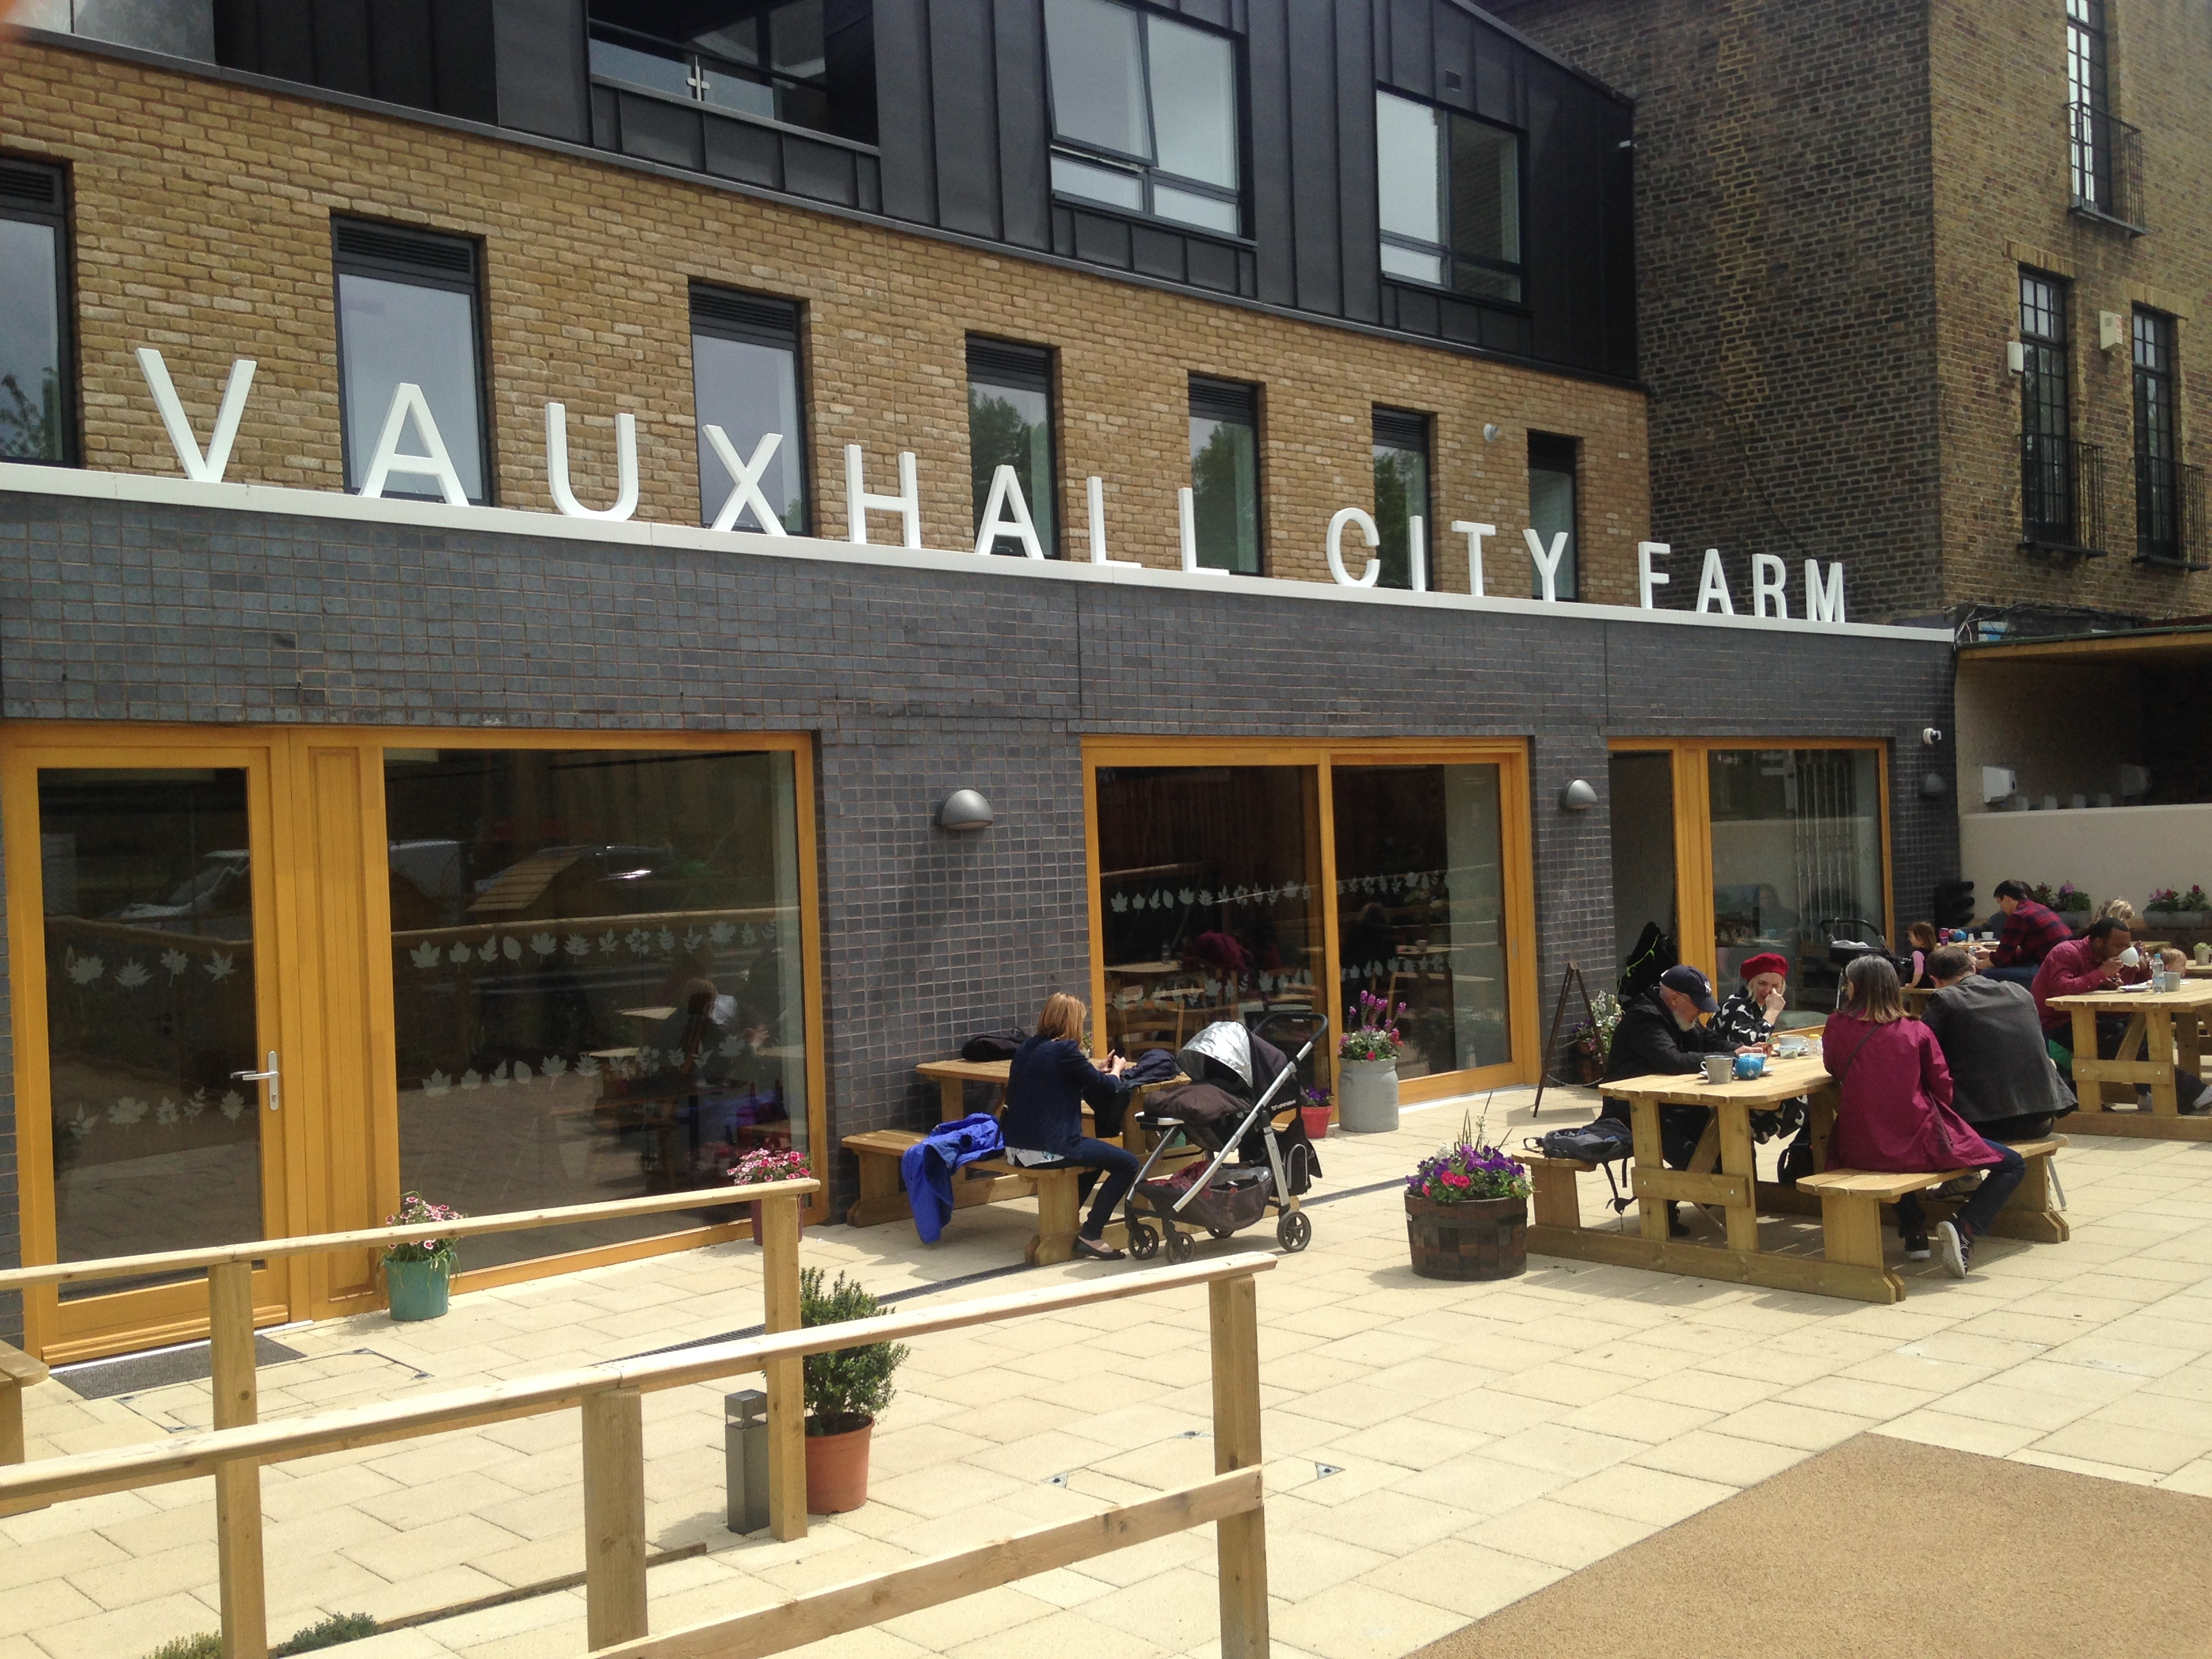 Vauxhall City Farm extension - kenningtonrunoff.com